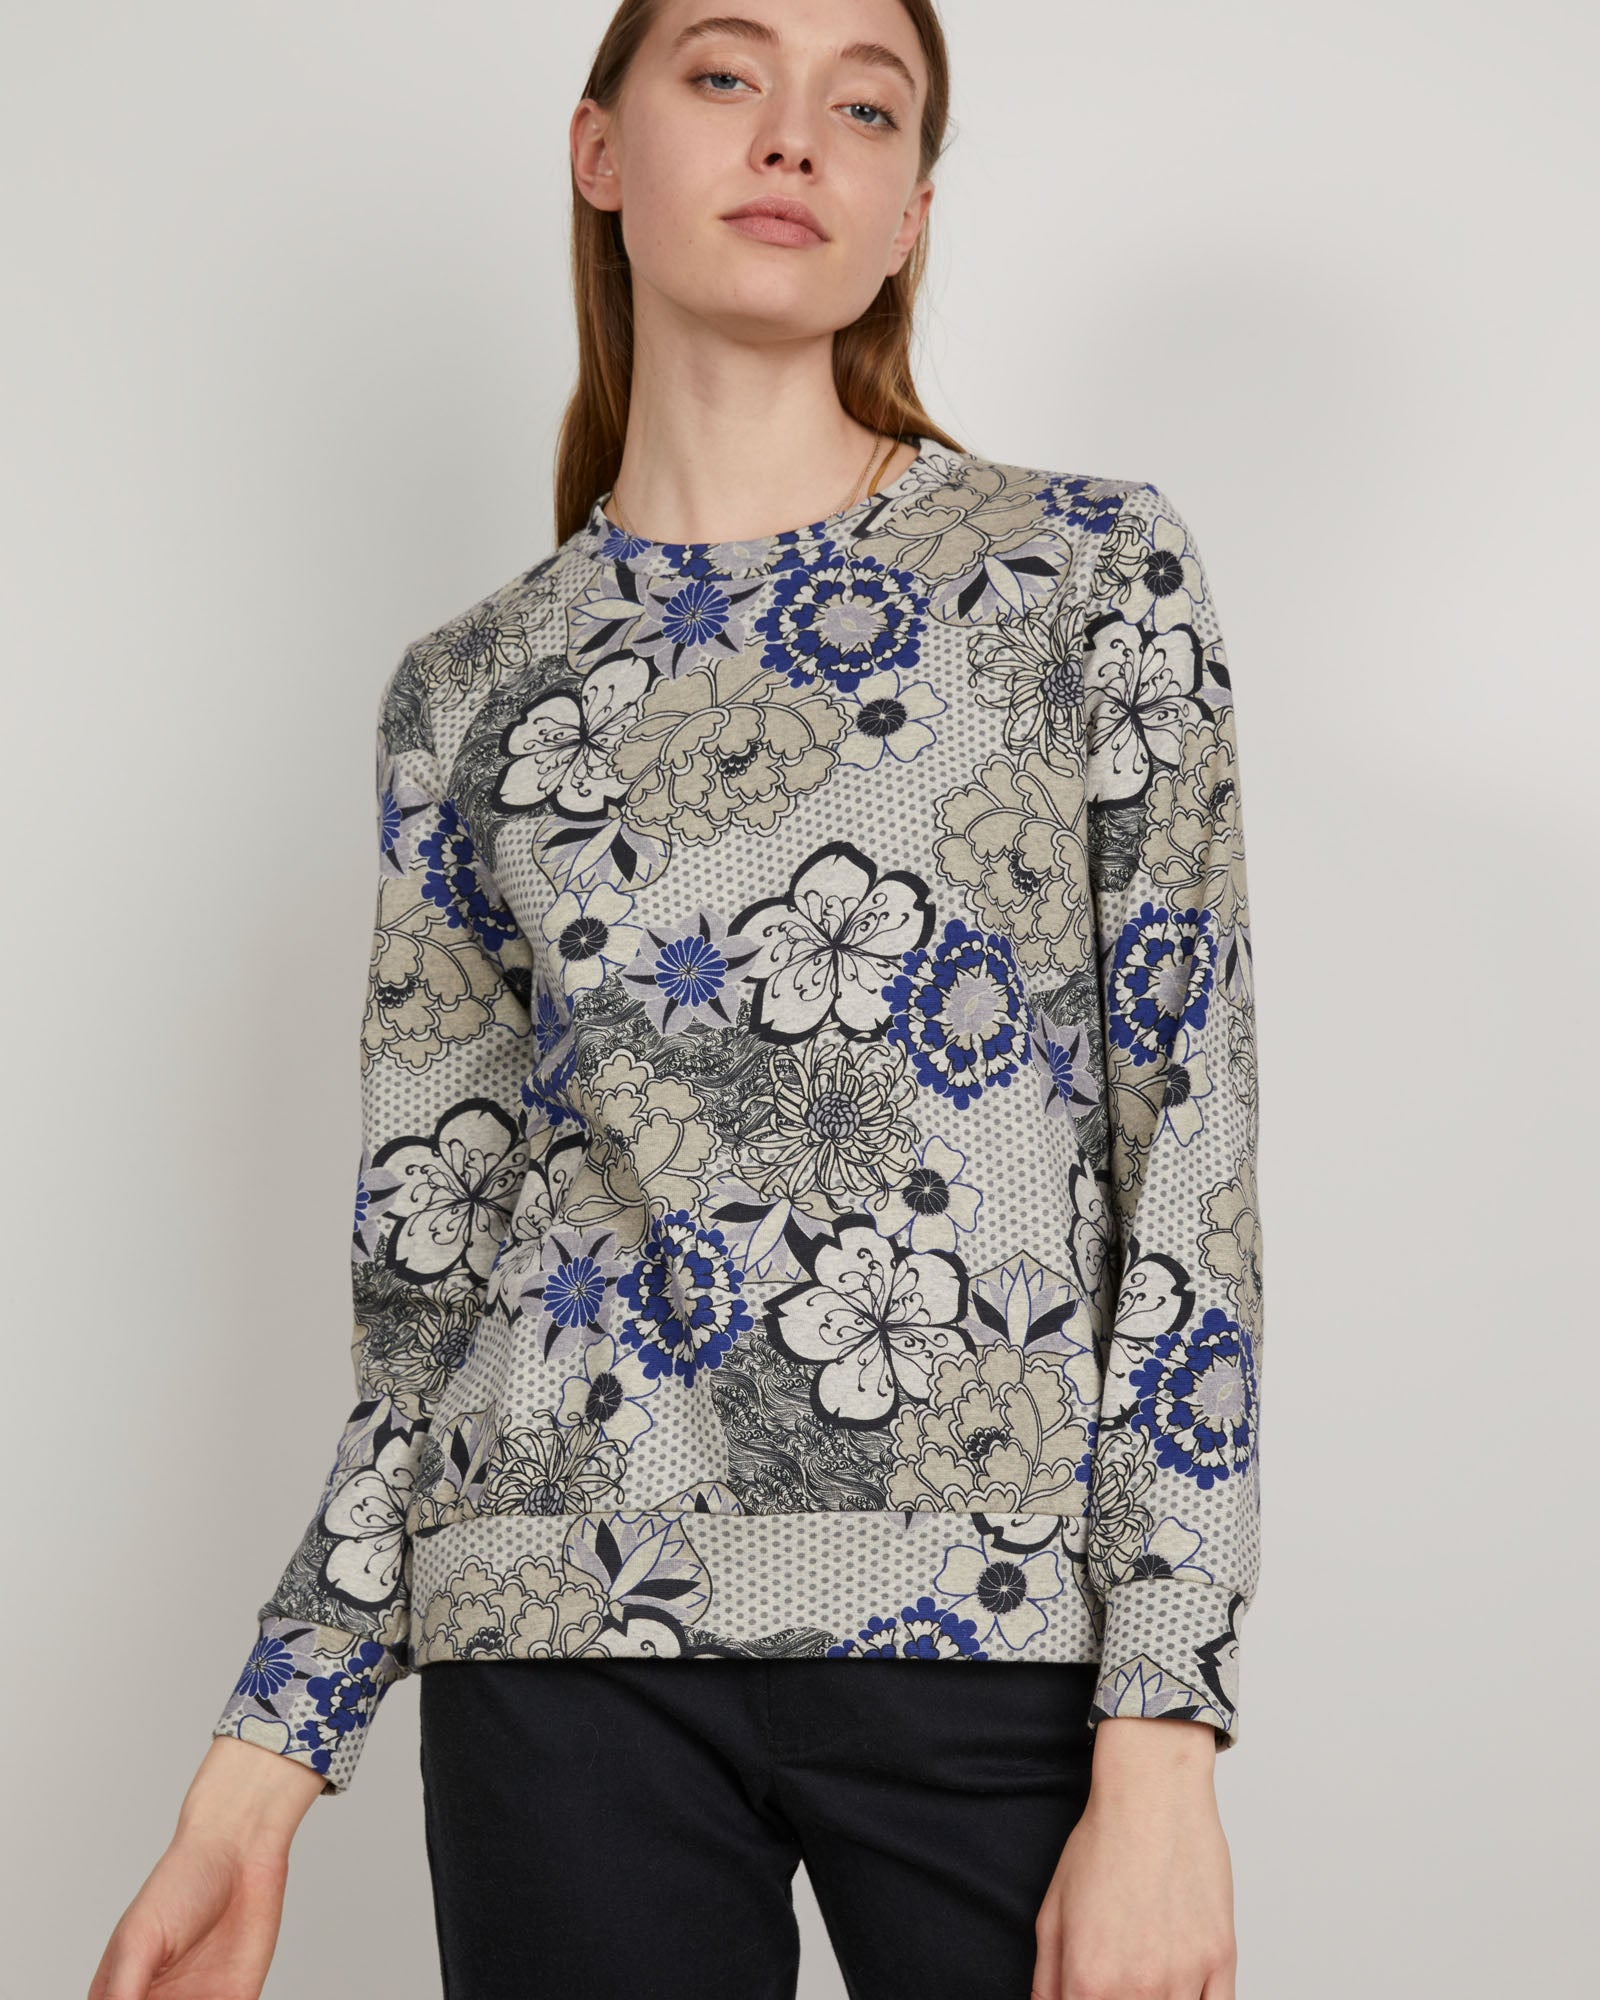 Rumi Sweatshirt | Pop Floral